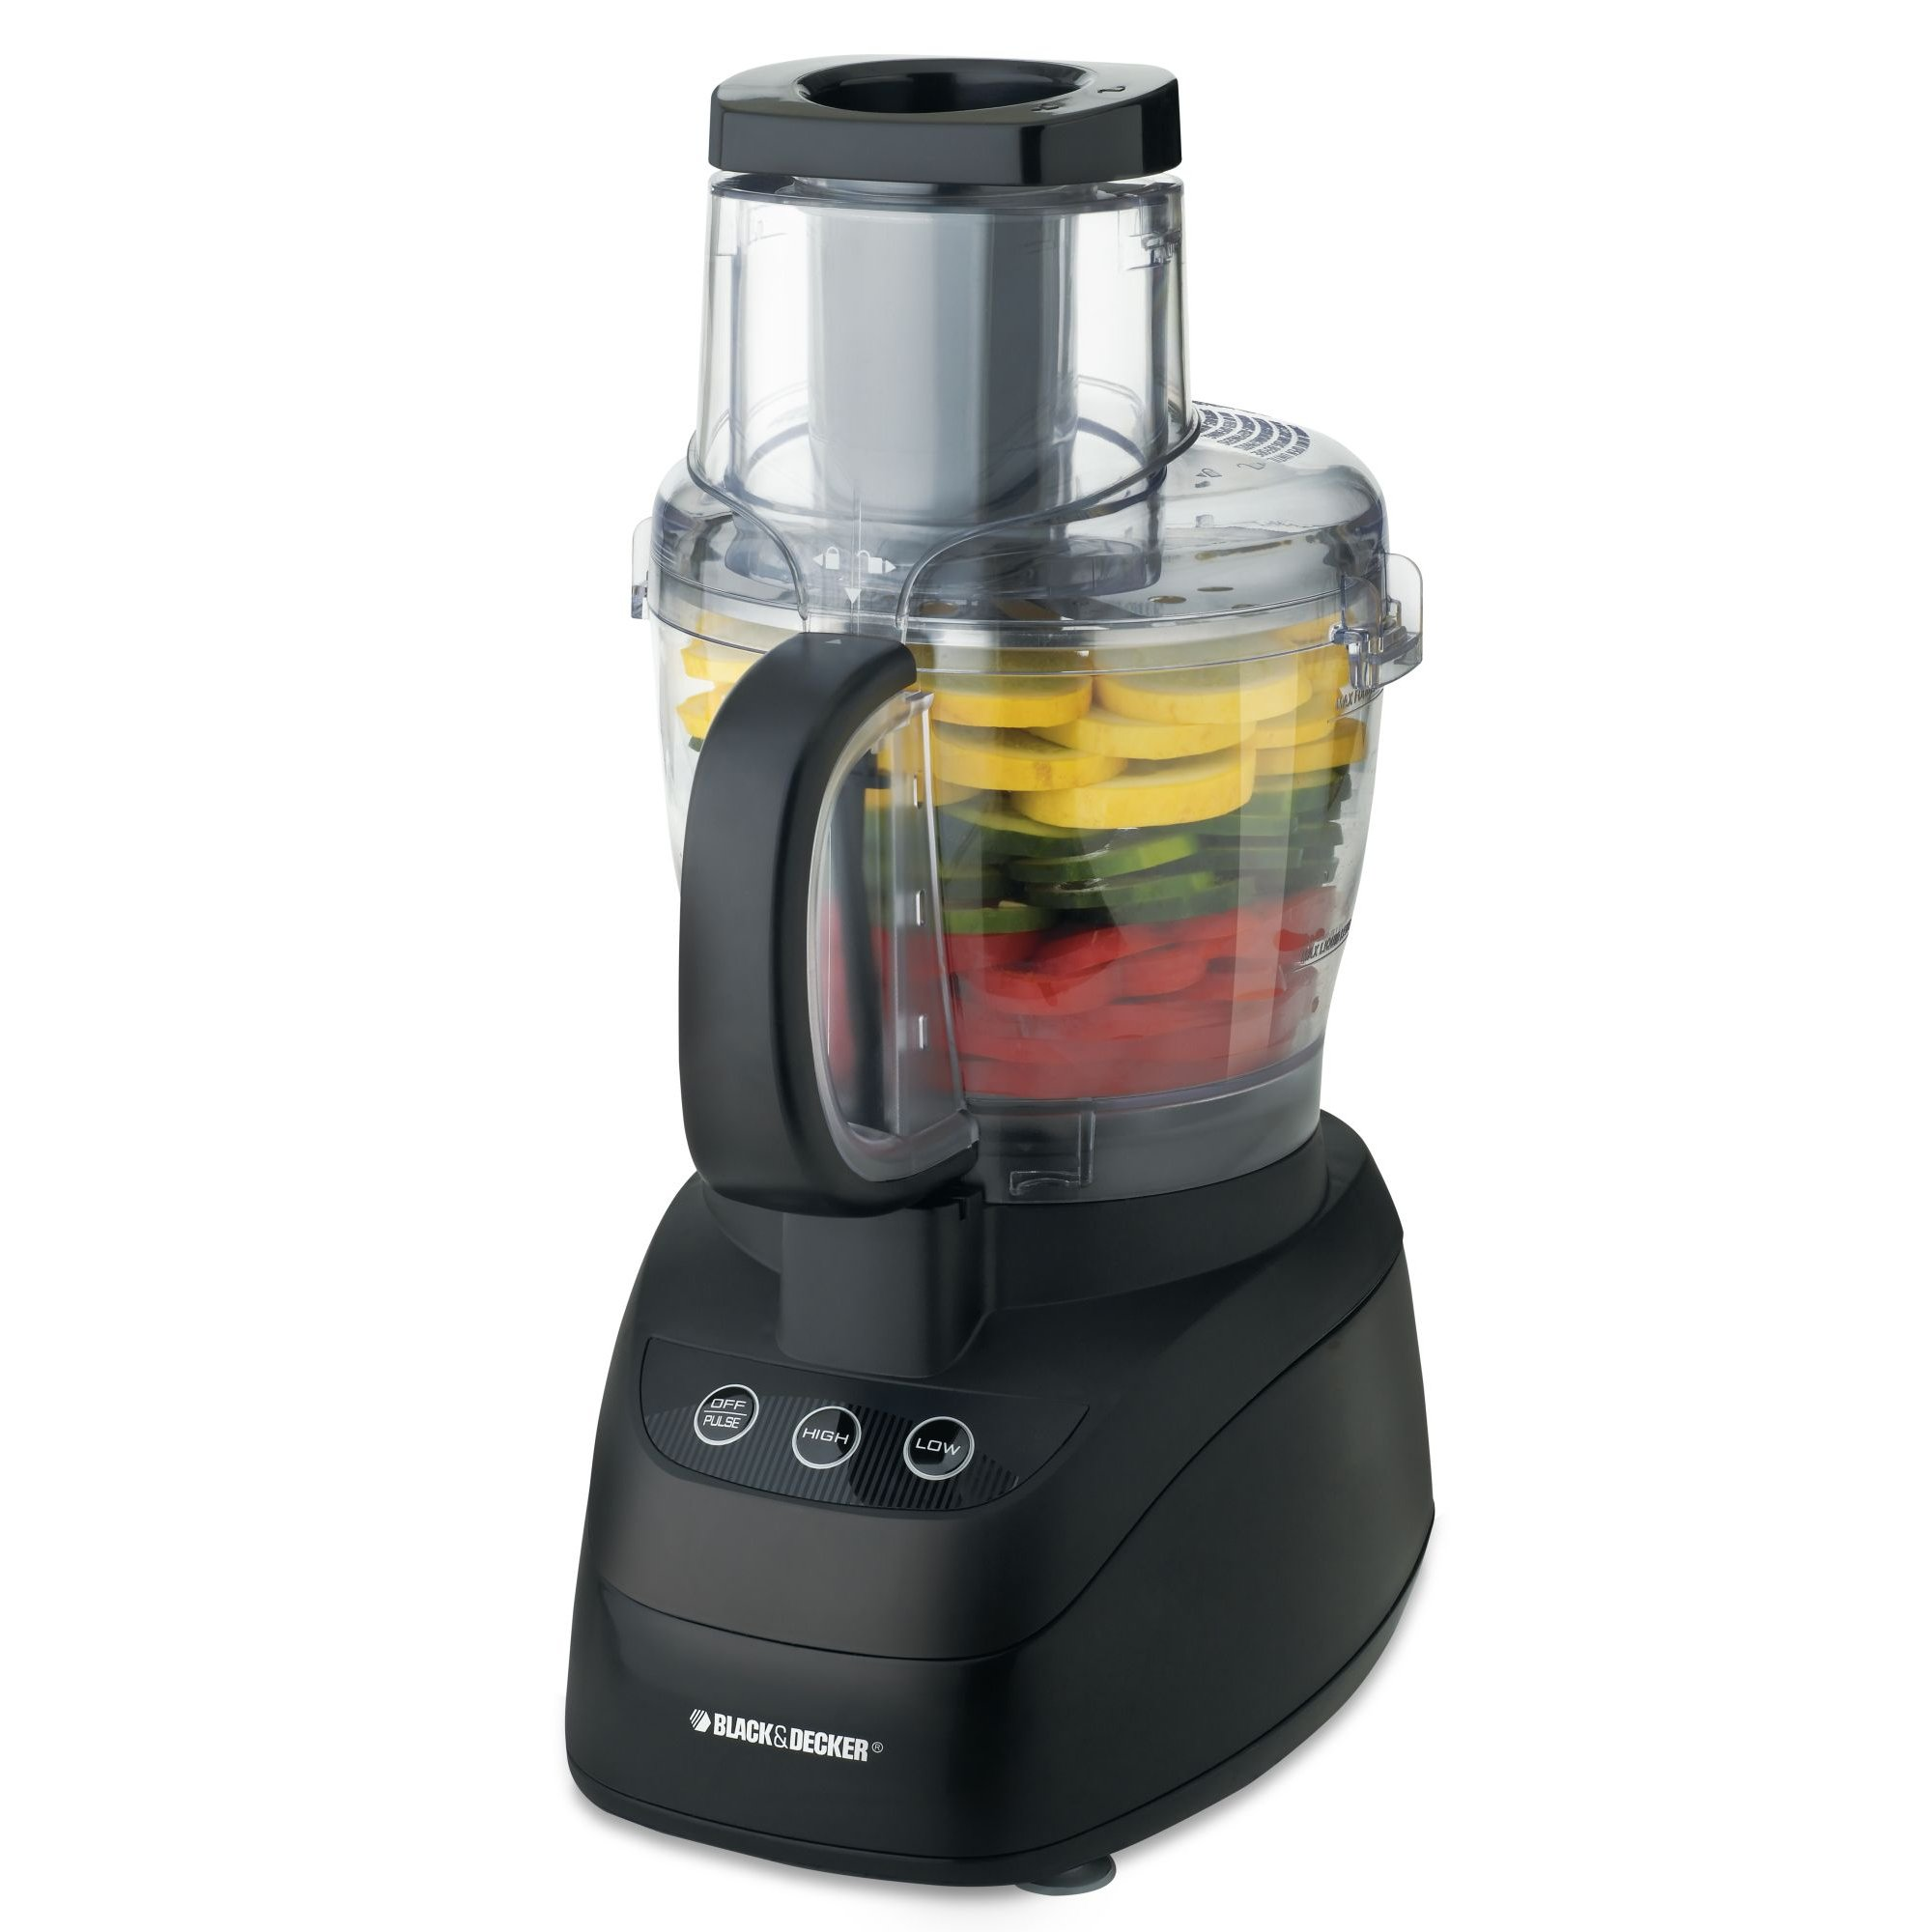 Black Decker WideMouth 10 cup Food Processor Black